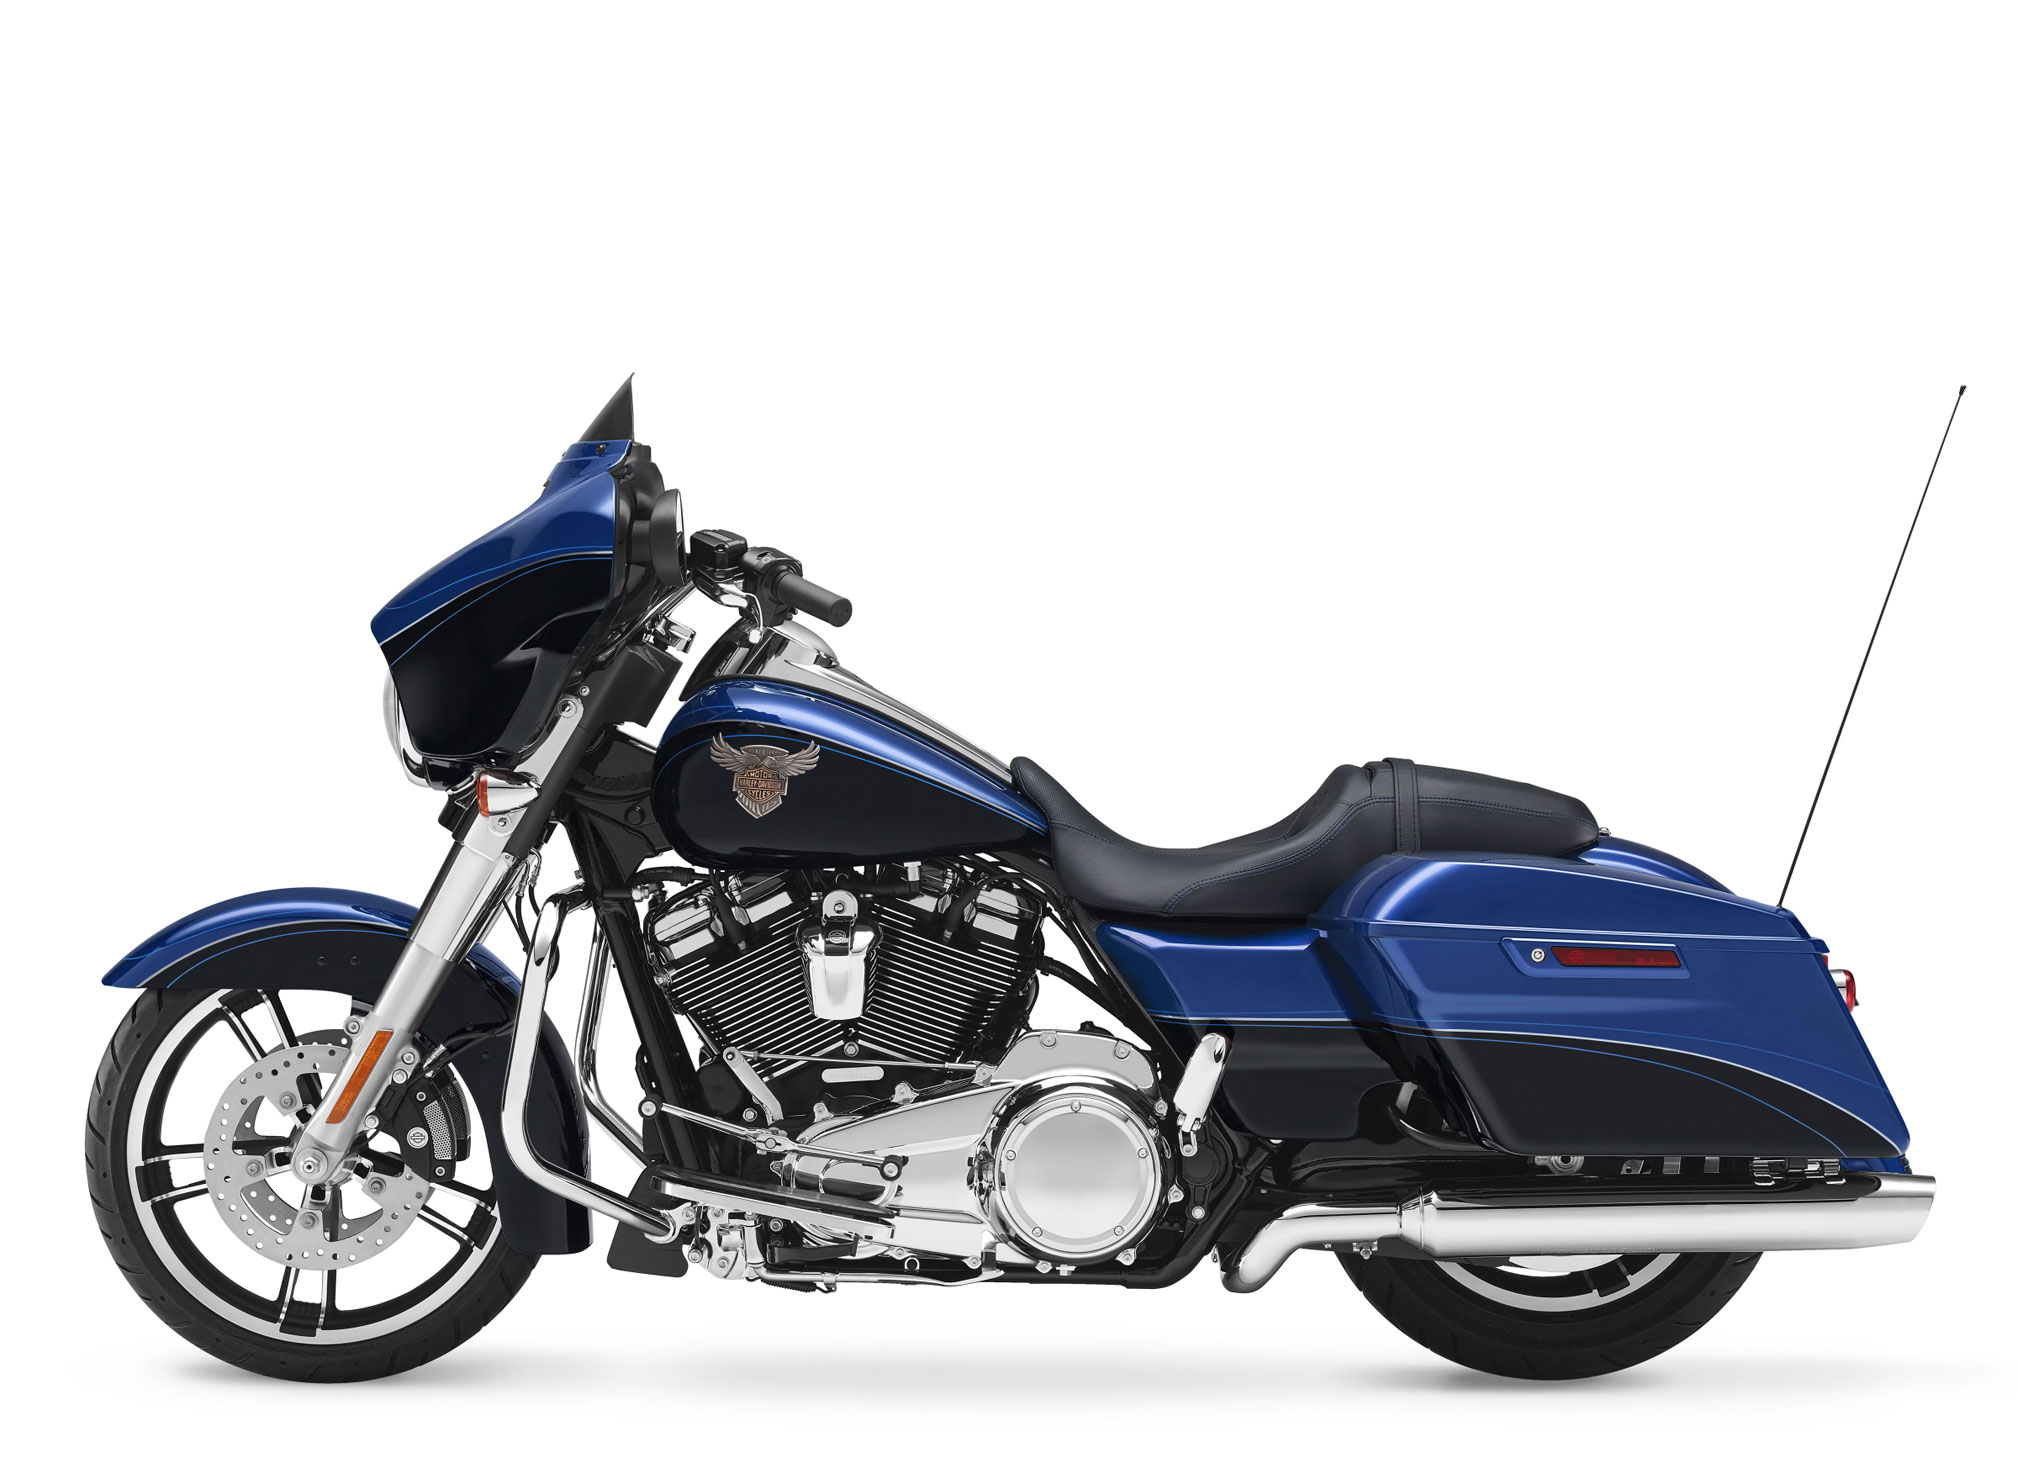 2018 Harley-Davidson Street Glide 115th Anniversary Review